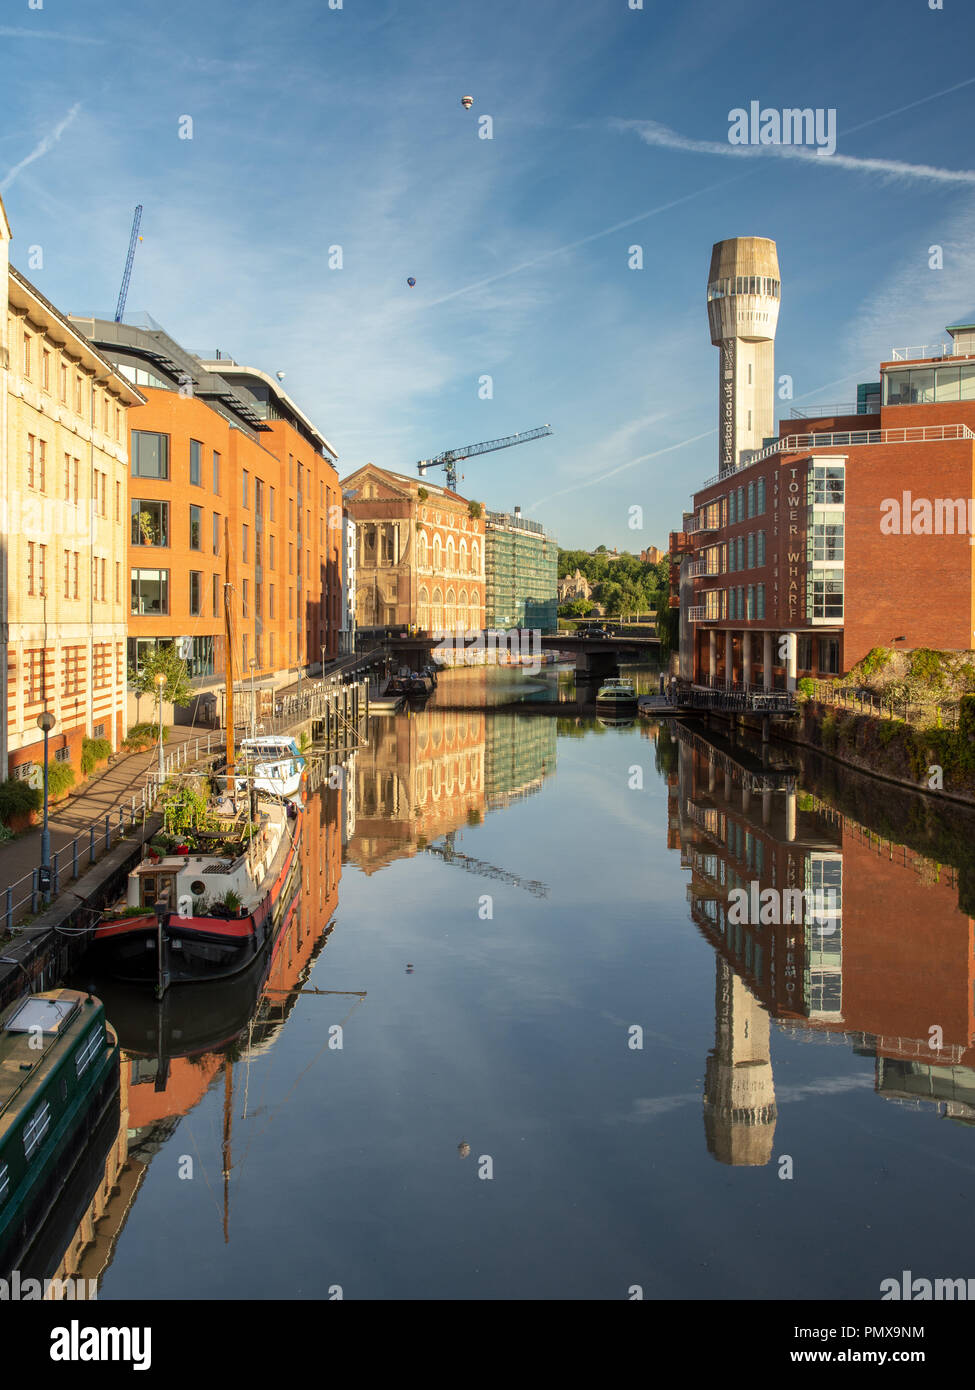 Bristol, England, UK - August 11, 2018: Hot air balloons fly across Bristol's Floating Harbour at dawn during the annual Balloon Fiesta. - Stock Image